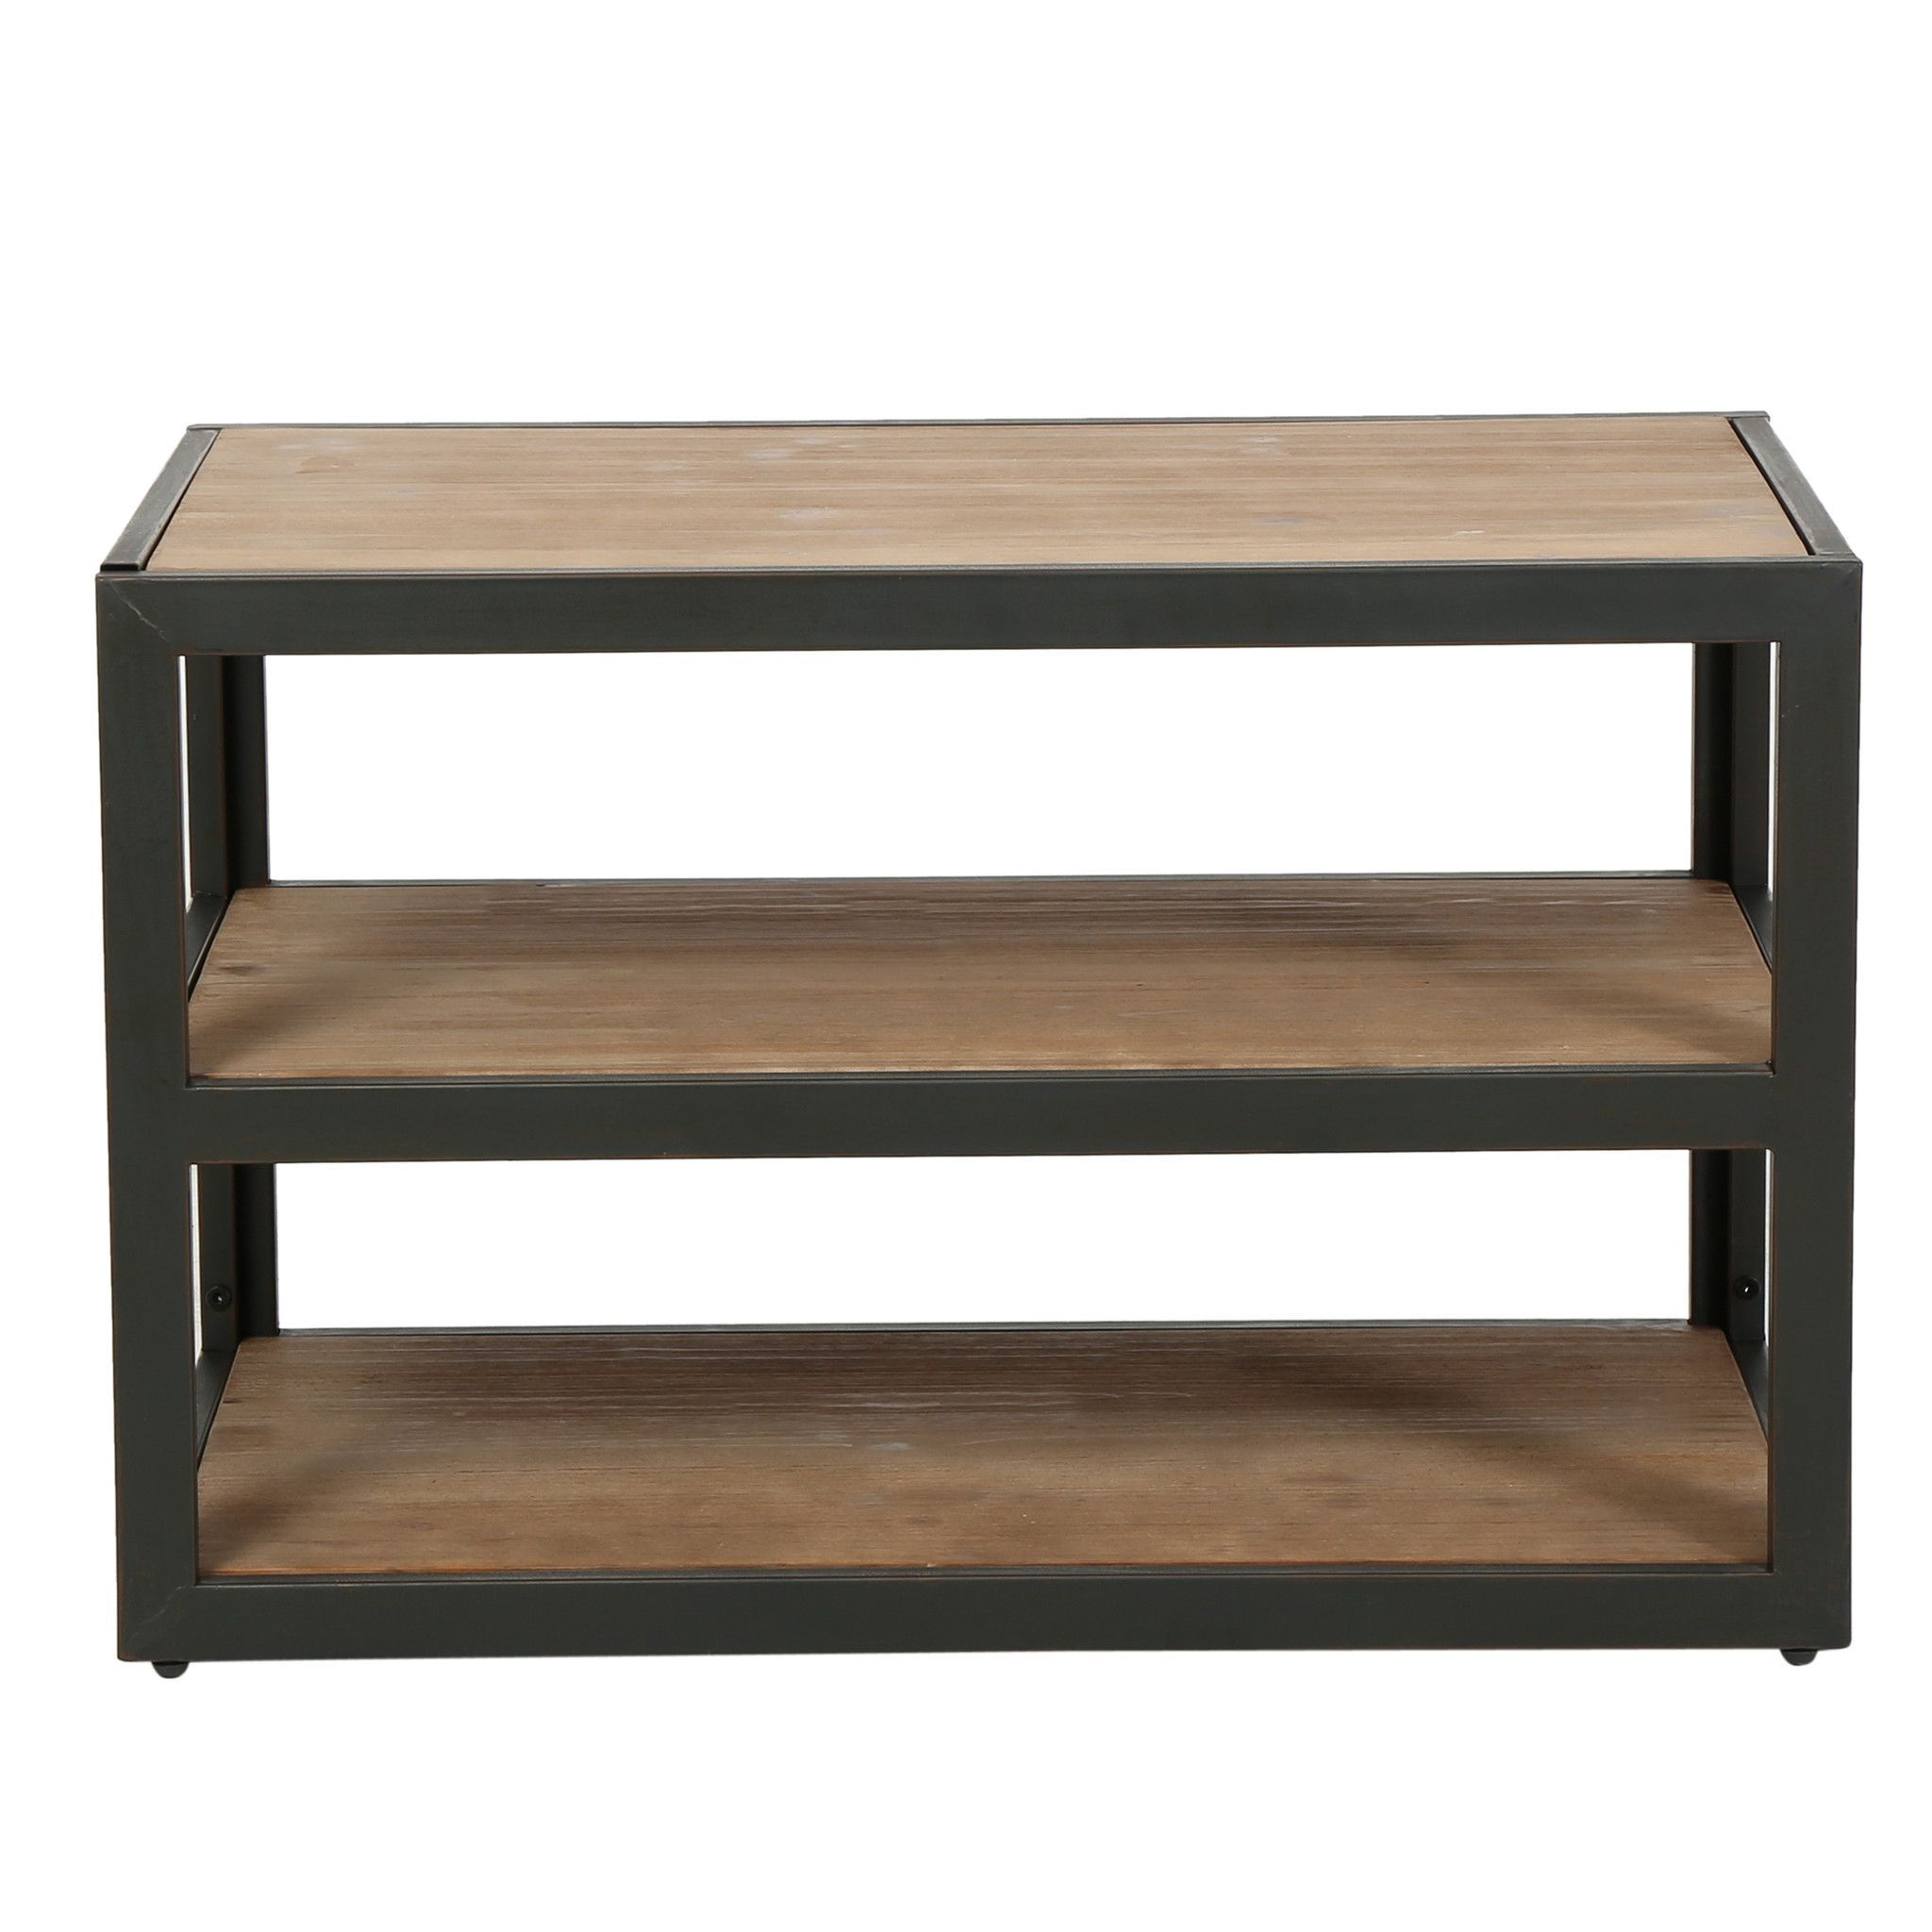 The Lundin Three Shelf Media Console Is Built In The